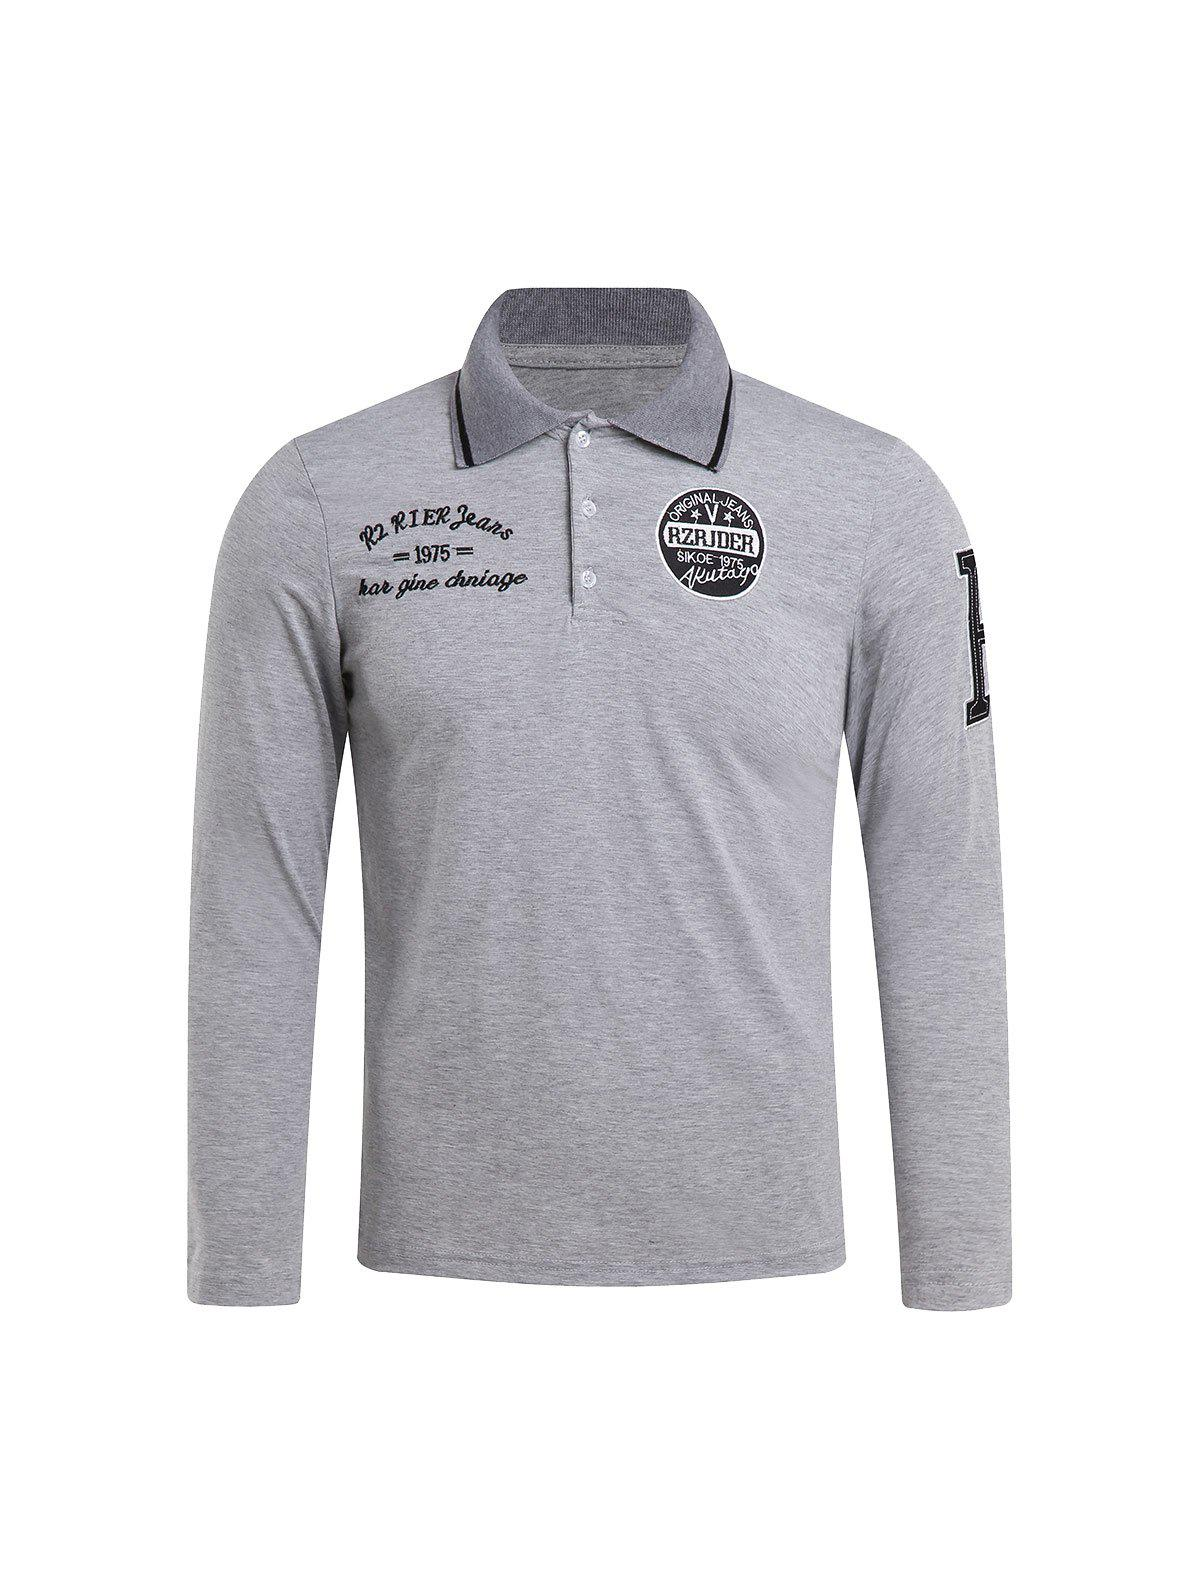 Slimming Turndown Collar Stylish Letter Embroidered Long Sleeve Polyester Men's Polo T-Shirt - LIGHT GRAY M